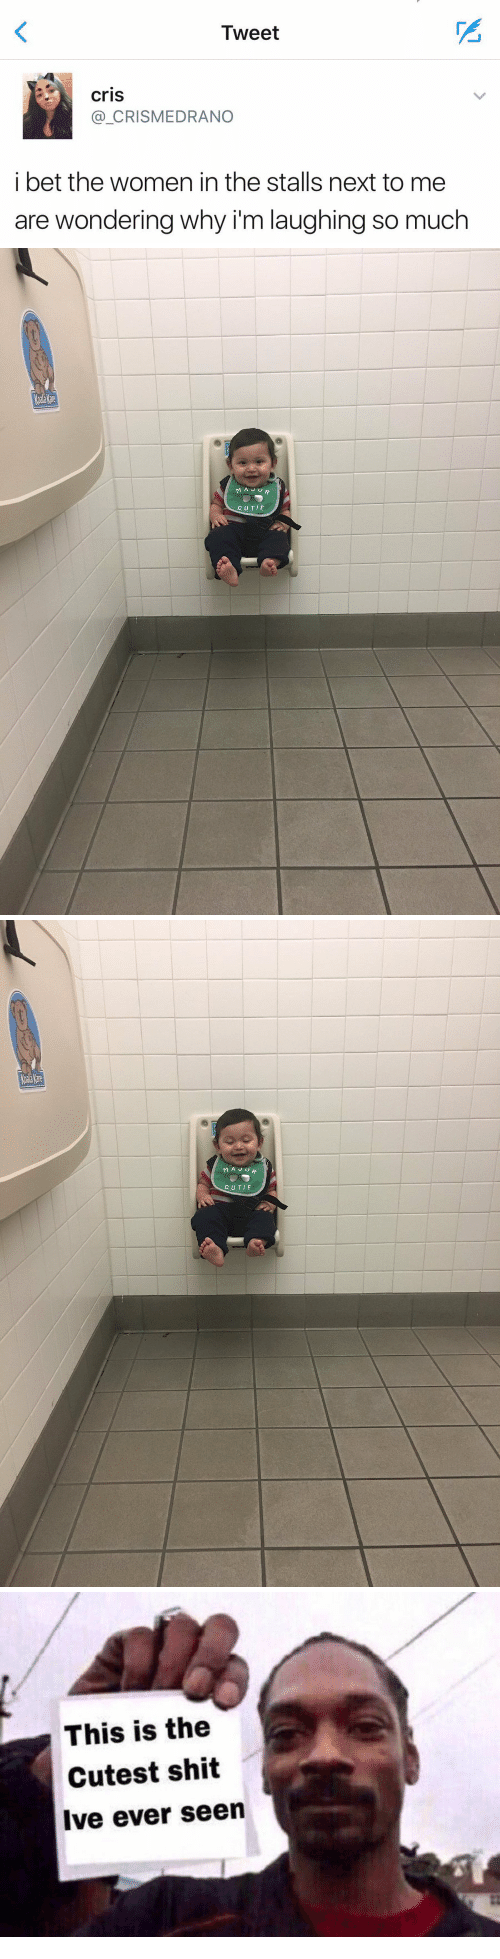 I Bet, Shit, and Women: Tweet  cris  _CRISMEDRANO  i bet the women in the stalls next to me  are wondering why i'm laughing so much   ar  CUTIE   ar  MAJU  CUTIE   This is the  Cutest shit  Ive ever seen